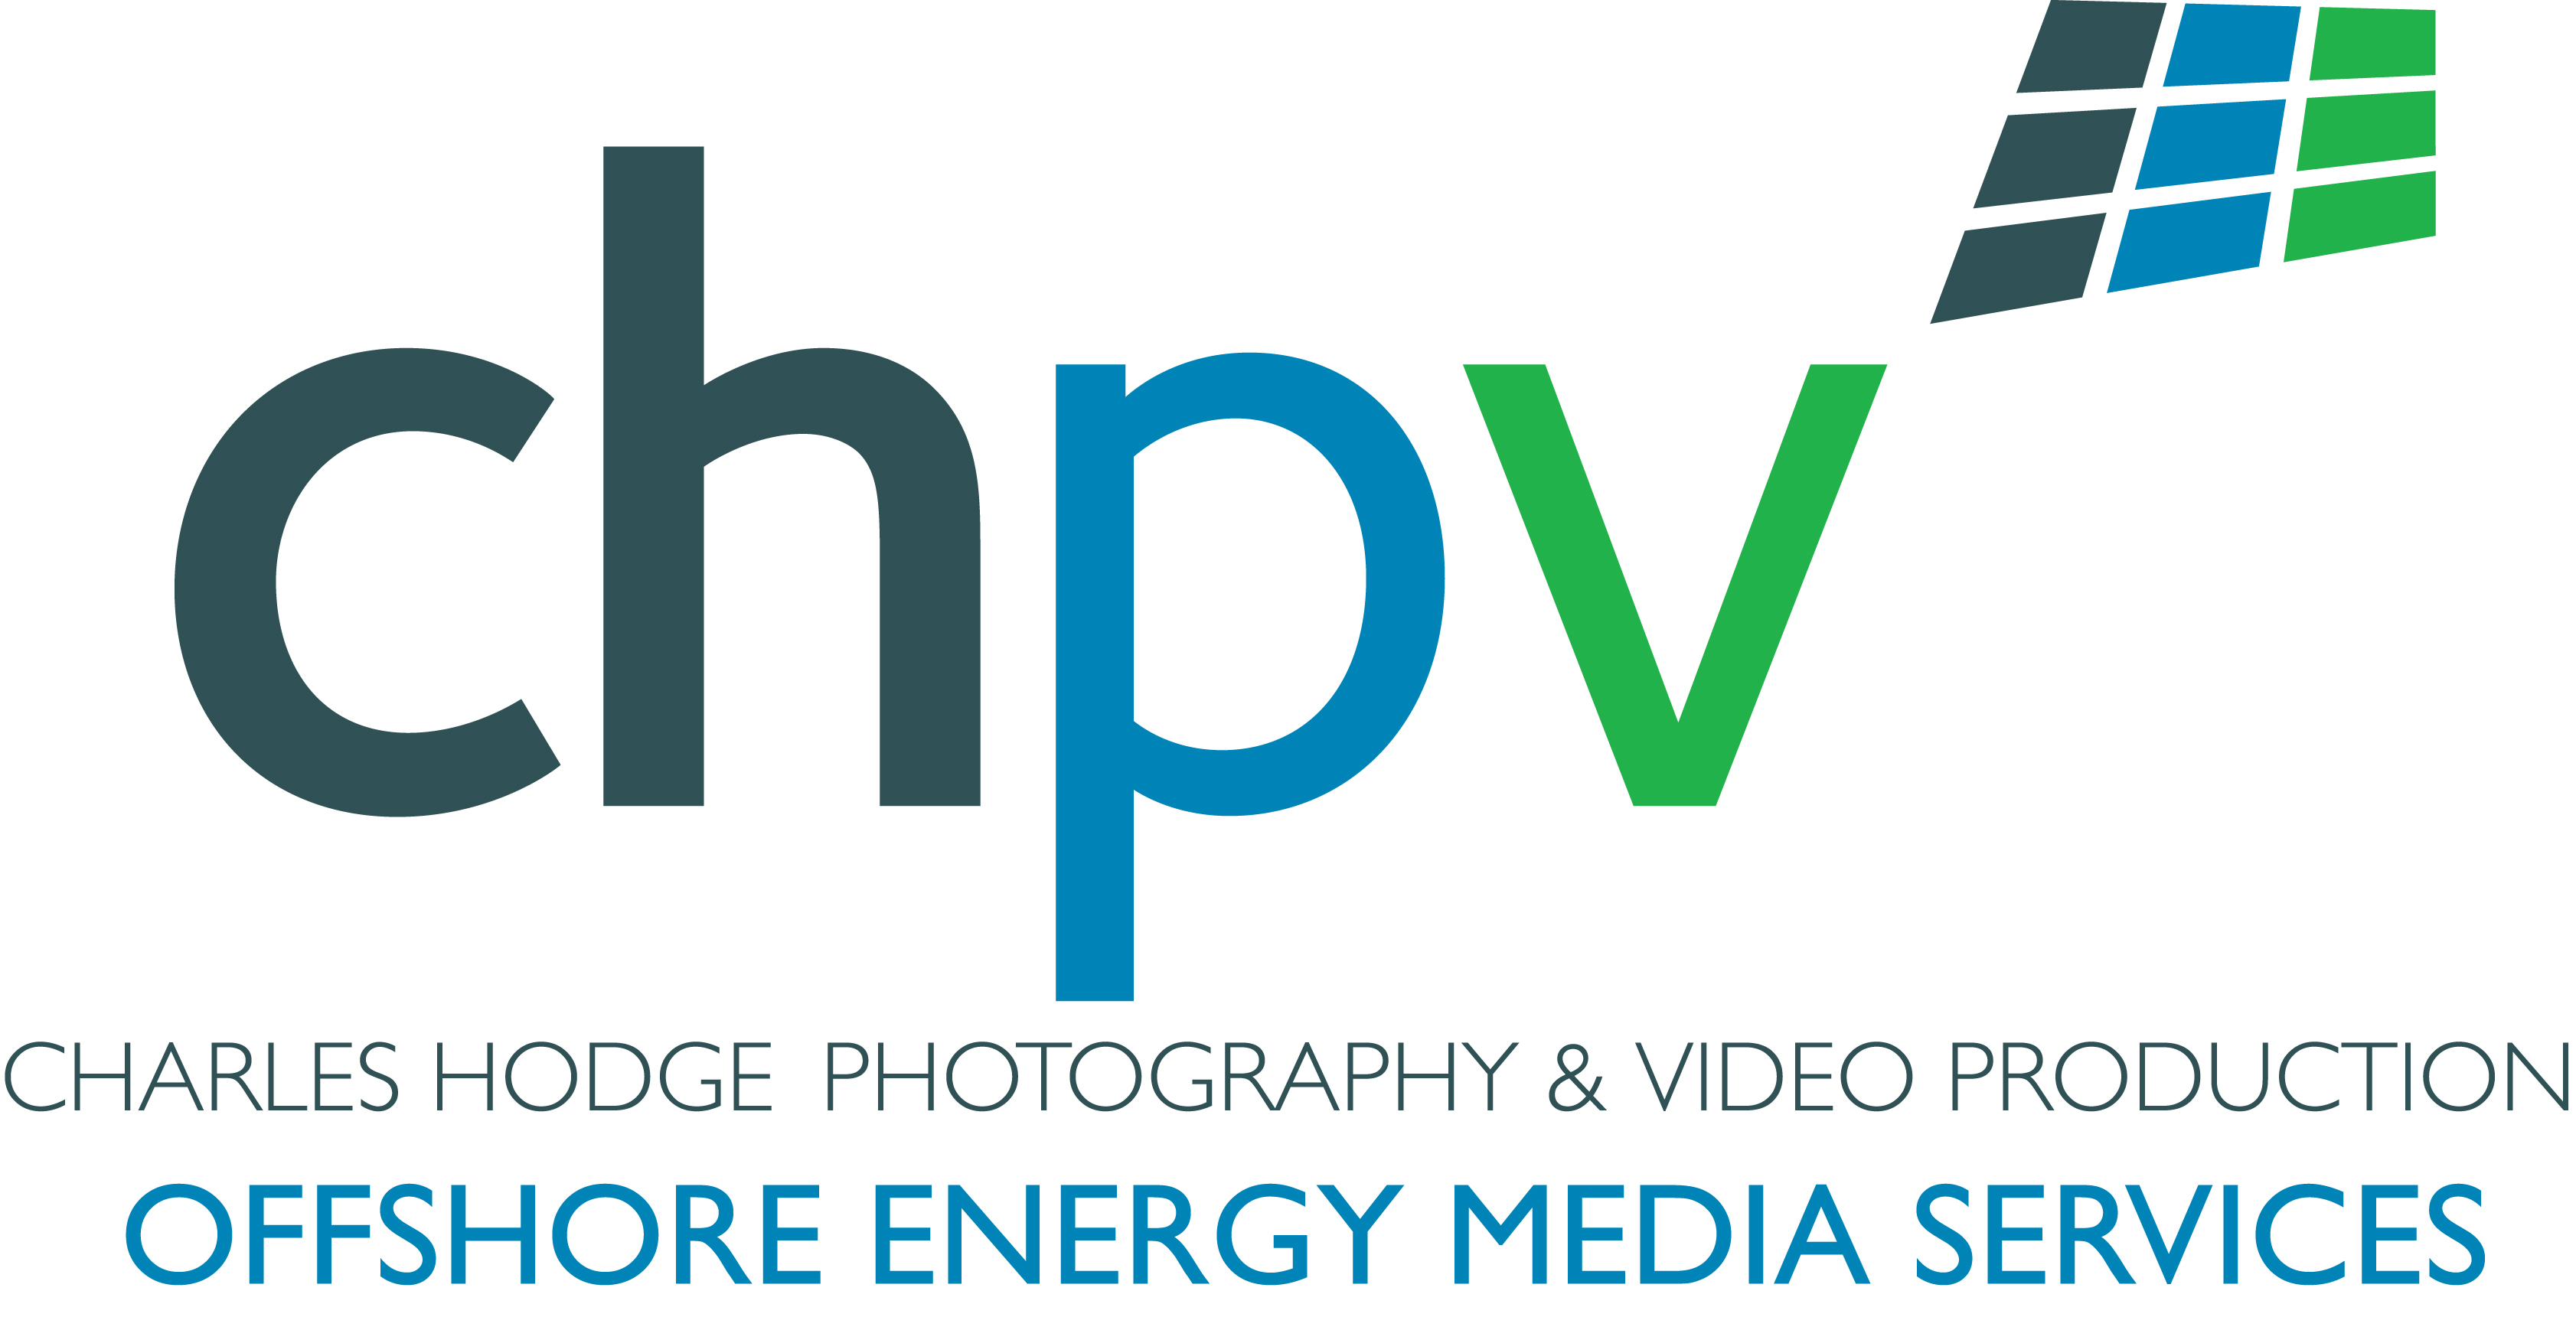 CHPV Offshore Energy Media Services